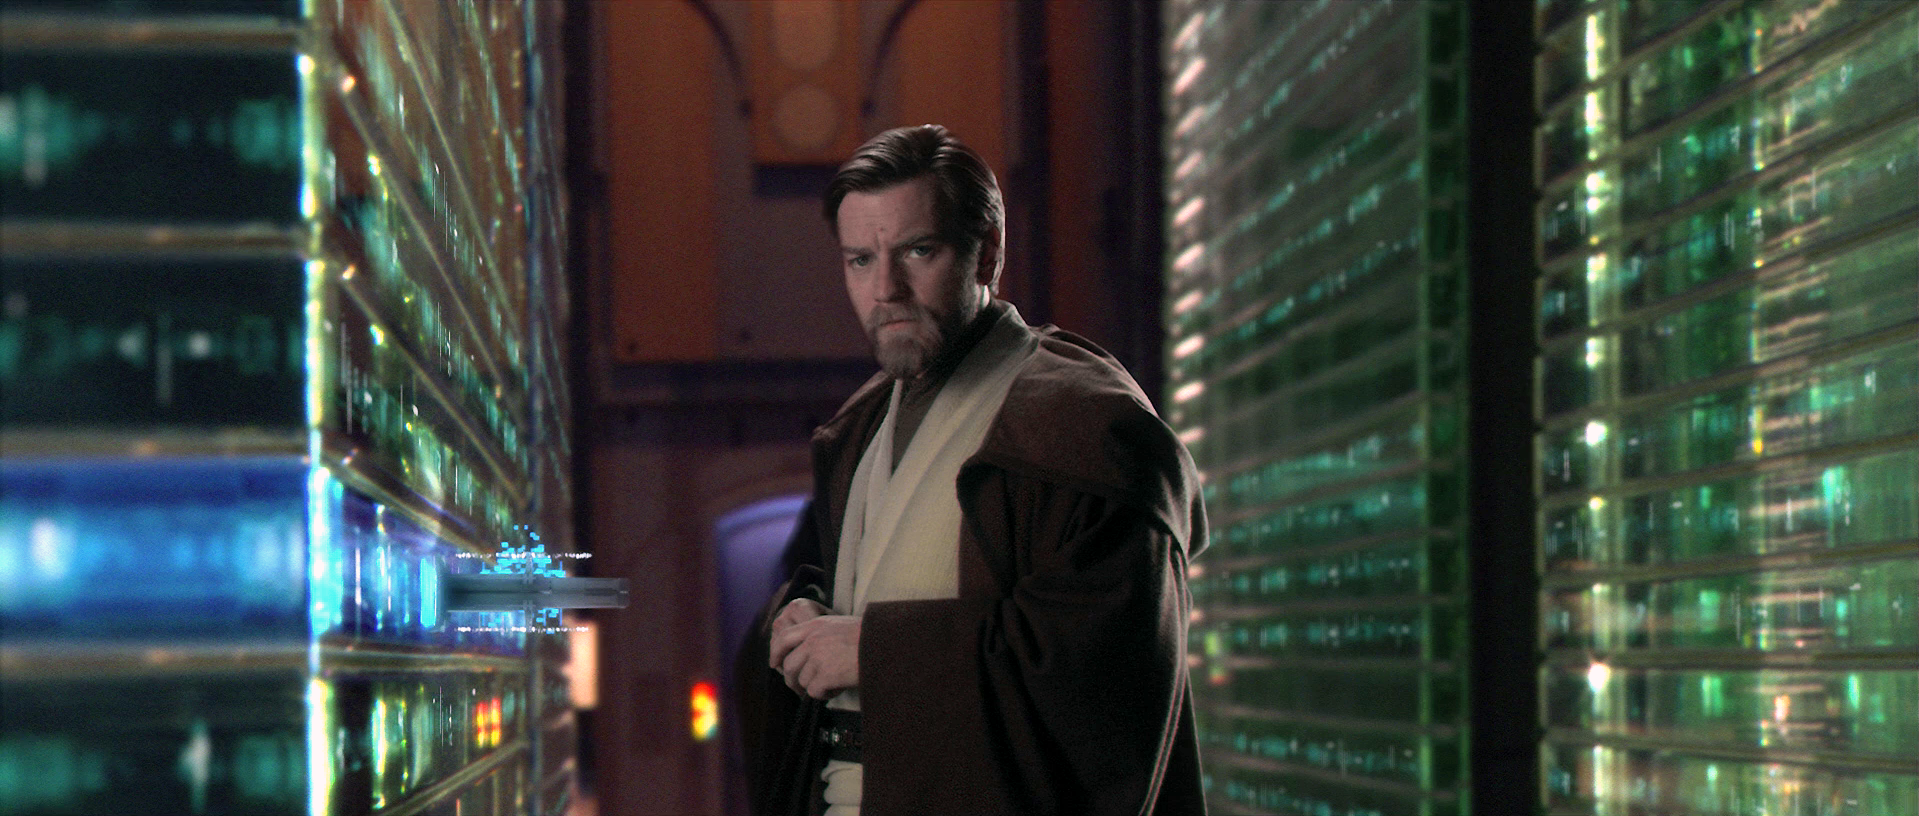 Obi-Wan Kenobi sets the Jedi Beacon to warn other Jedi away from the Jedi Temple in Episode III